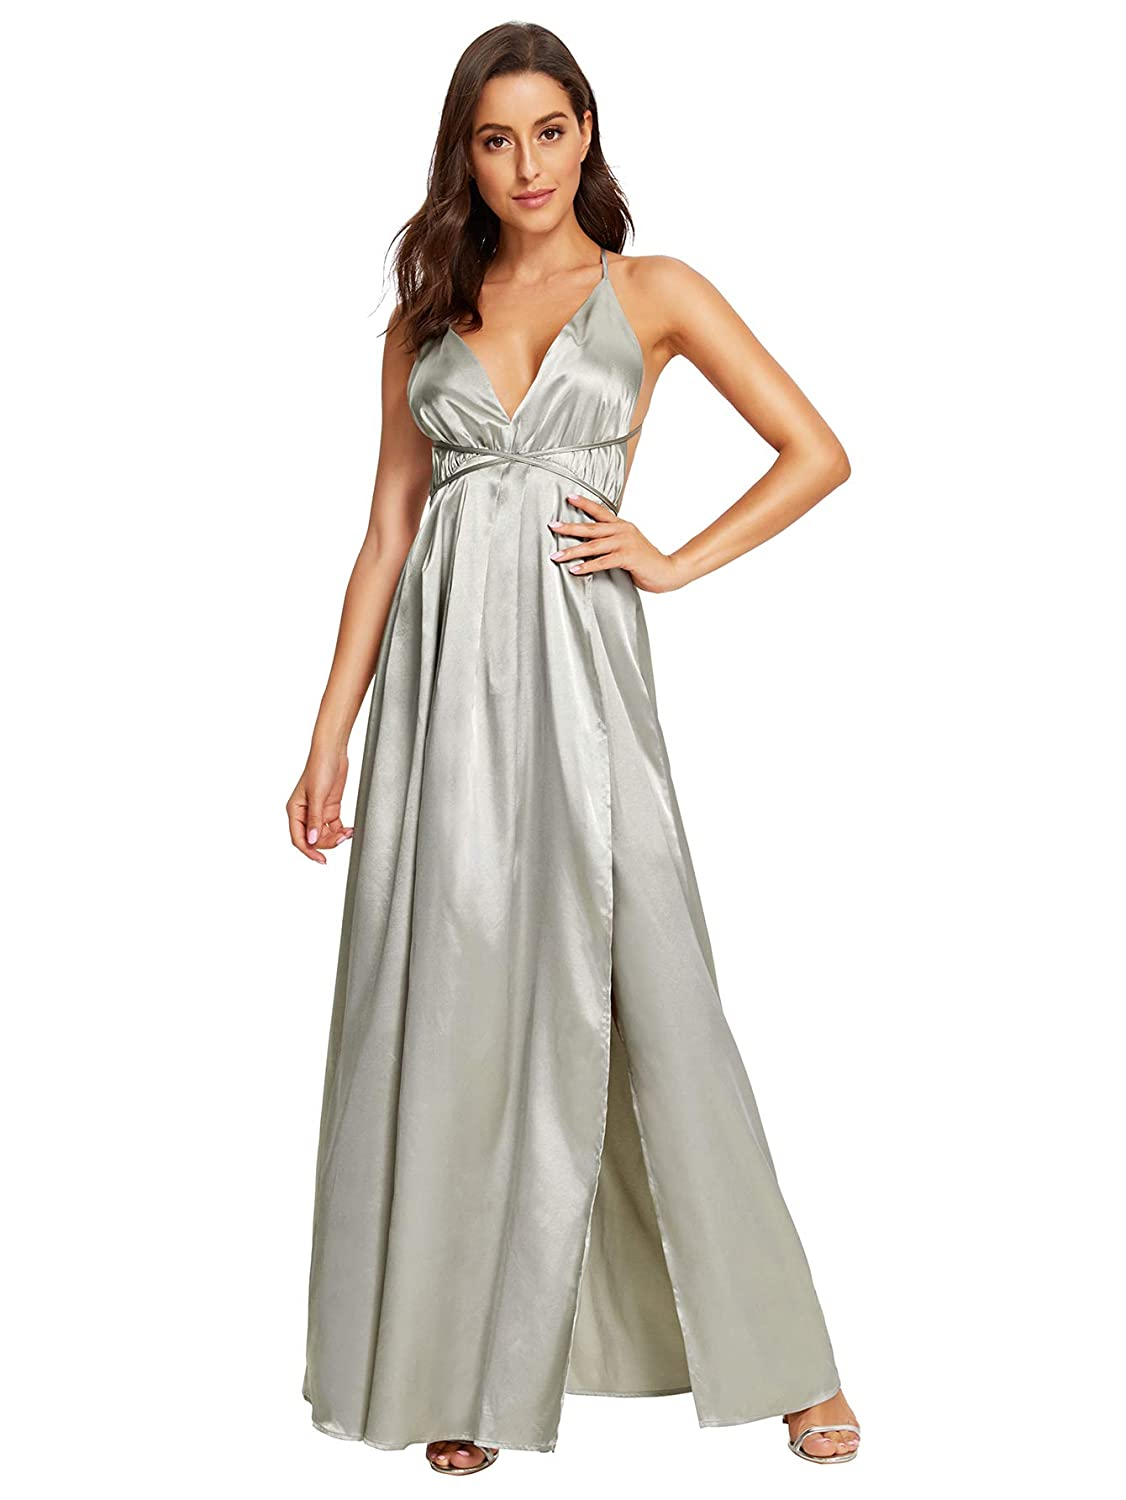 d3fa807dd8 SheIn Women's Sexy Satin Deep V Neck Backless Maxi Party Evening Dress at  Amazon Women's Clothing store: